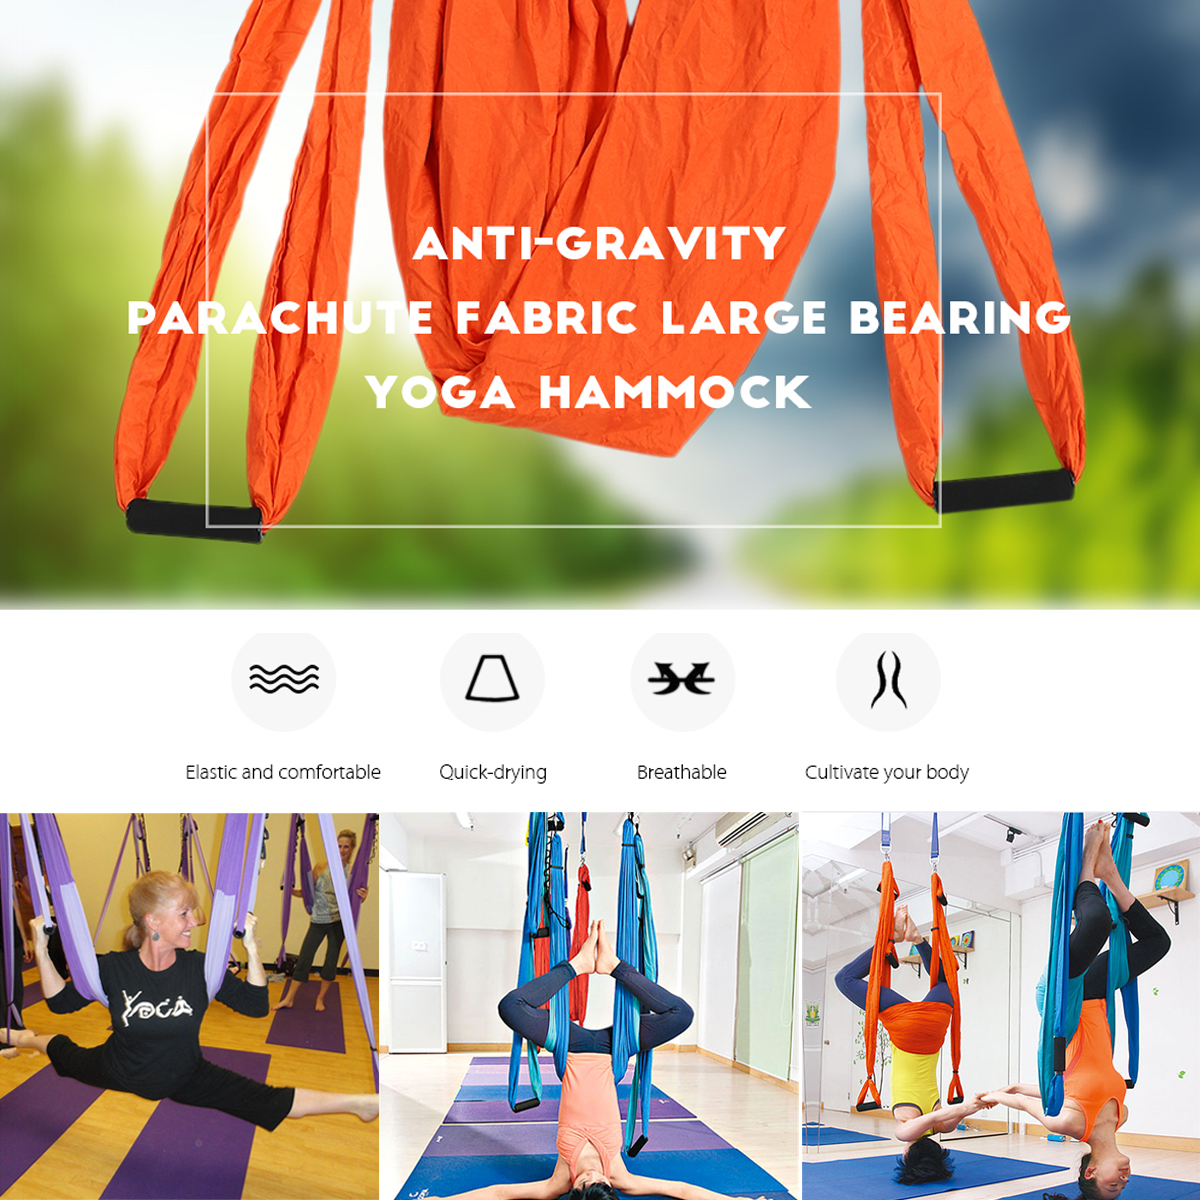 Yoga Flying Hammock Inversion Swing Anti Gravity Trapeze Aerial Sling Colors Aerial Anti-tearing Soft and Comfortable Cleaned 2 5m 1 5m bearing 500kg elastic exercise yoga hammock aerial swing anti gravity yoga belt inversion trapeze hanging gym traction